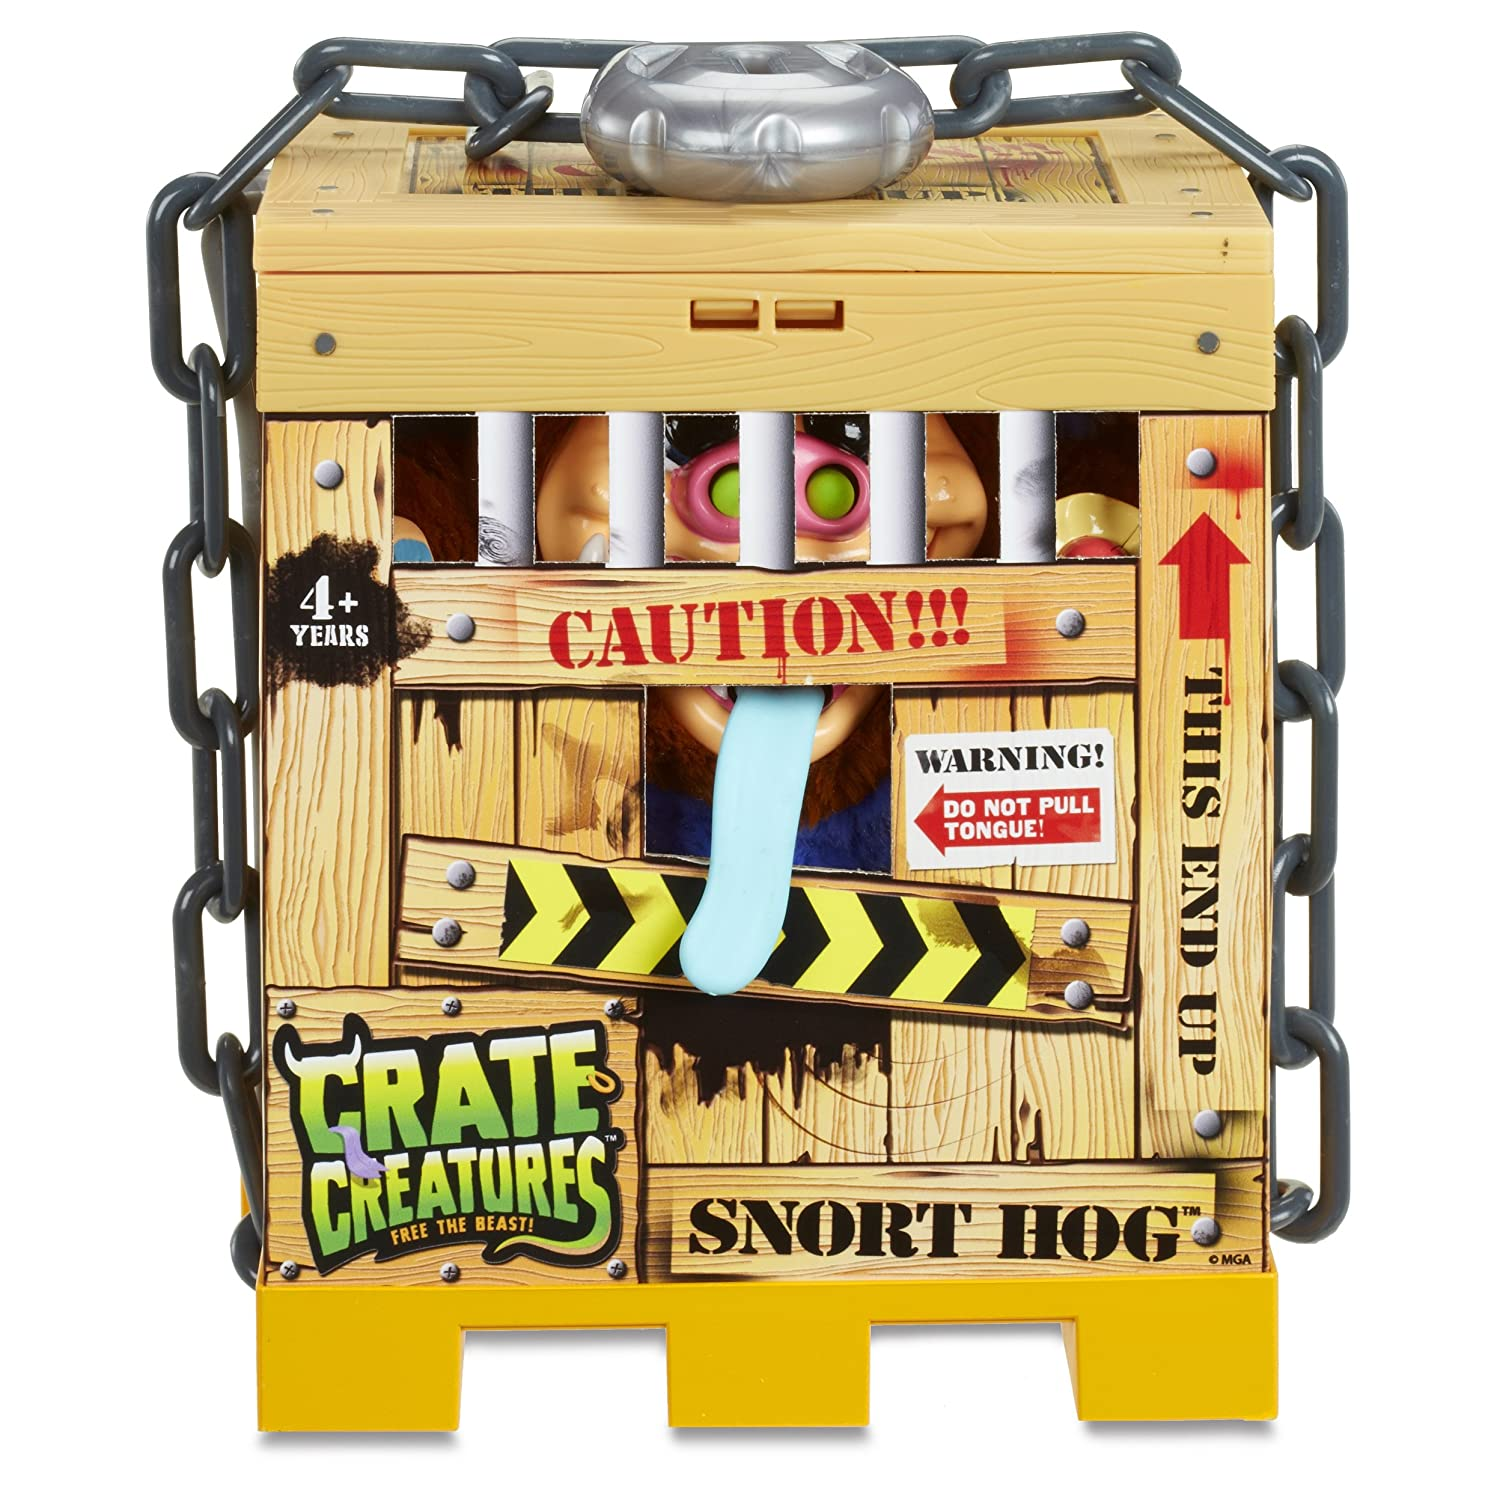 MGA Entertainment 549253E5C Crate Braun Creatures Surprise -Snort Dog Spielzeug, Braun Crate 80cf66